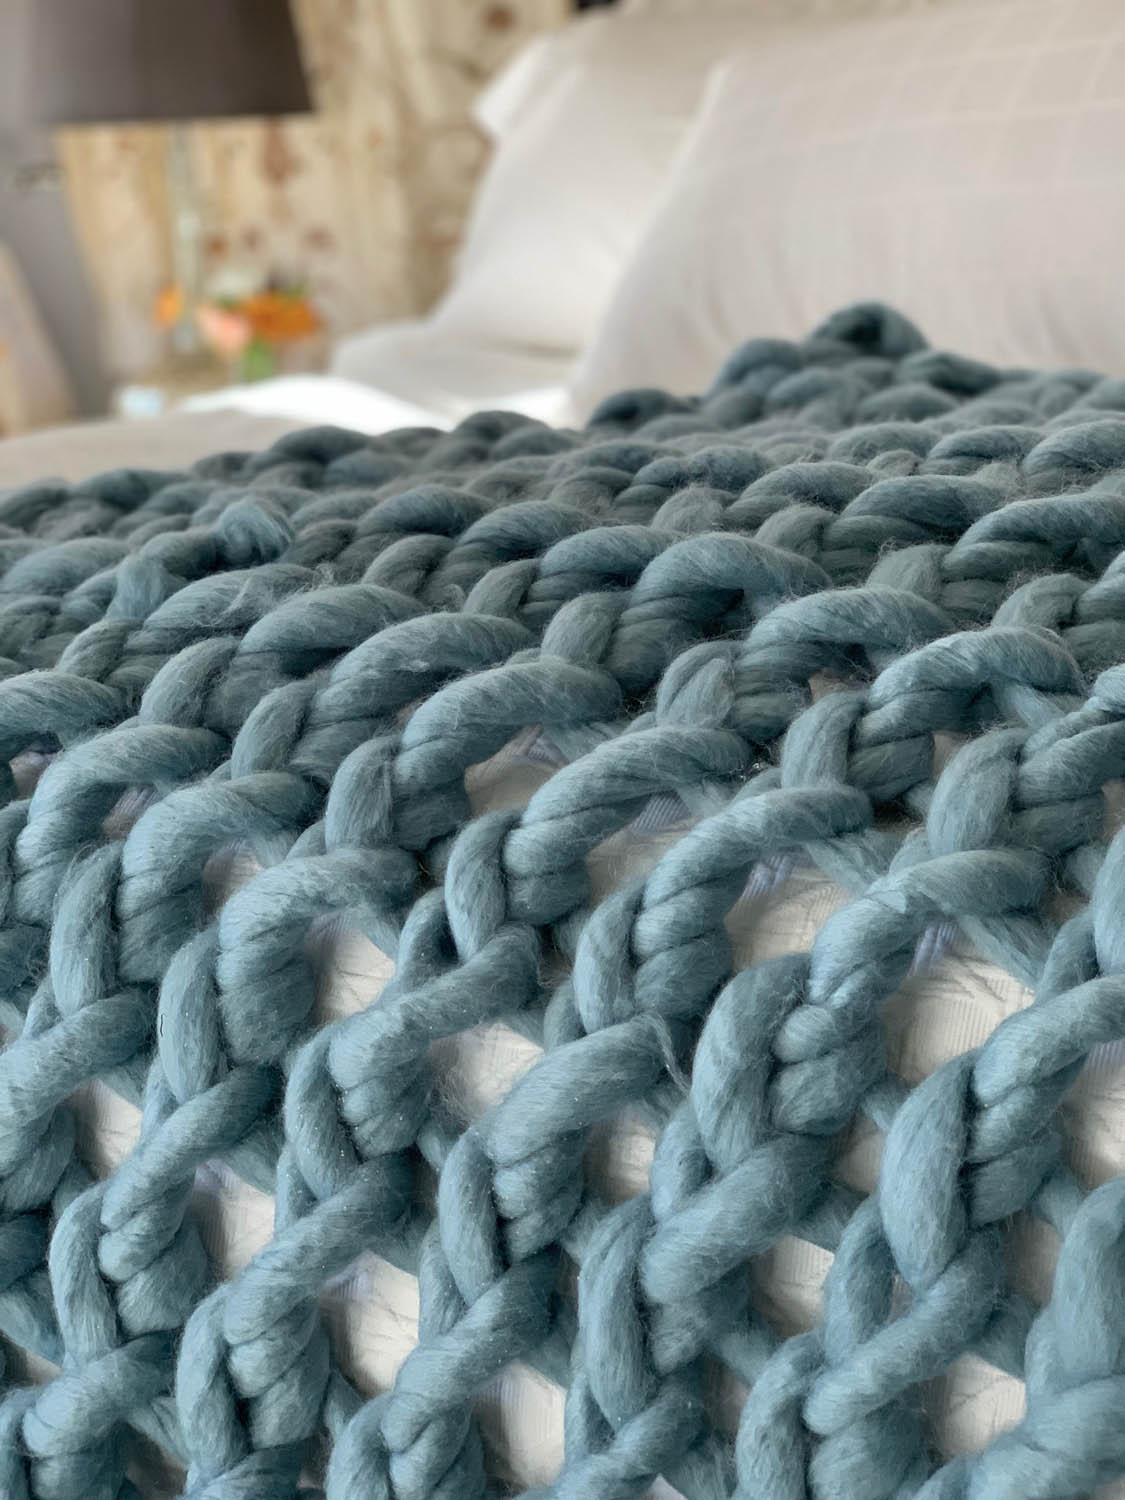 Finished arm-knitted throw on a bed